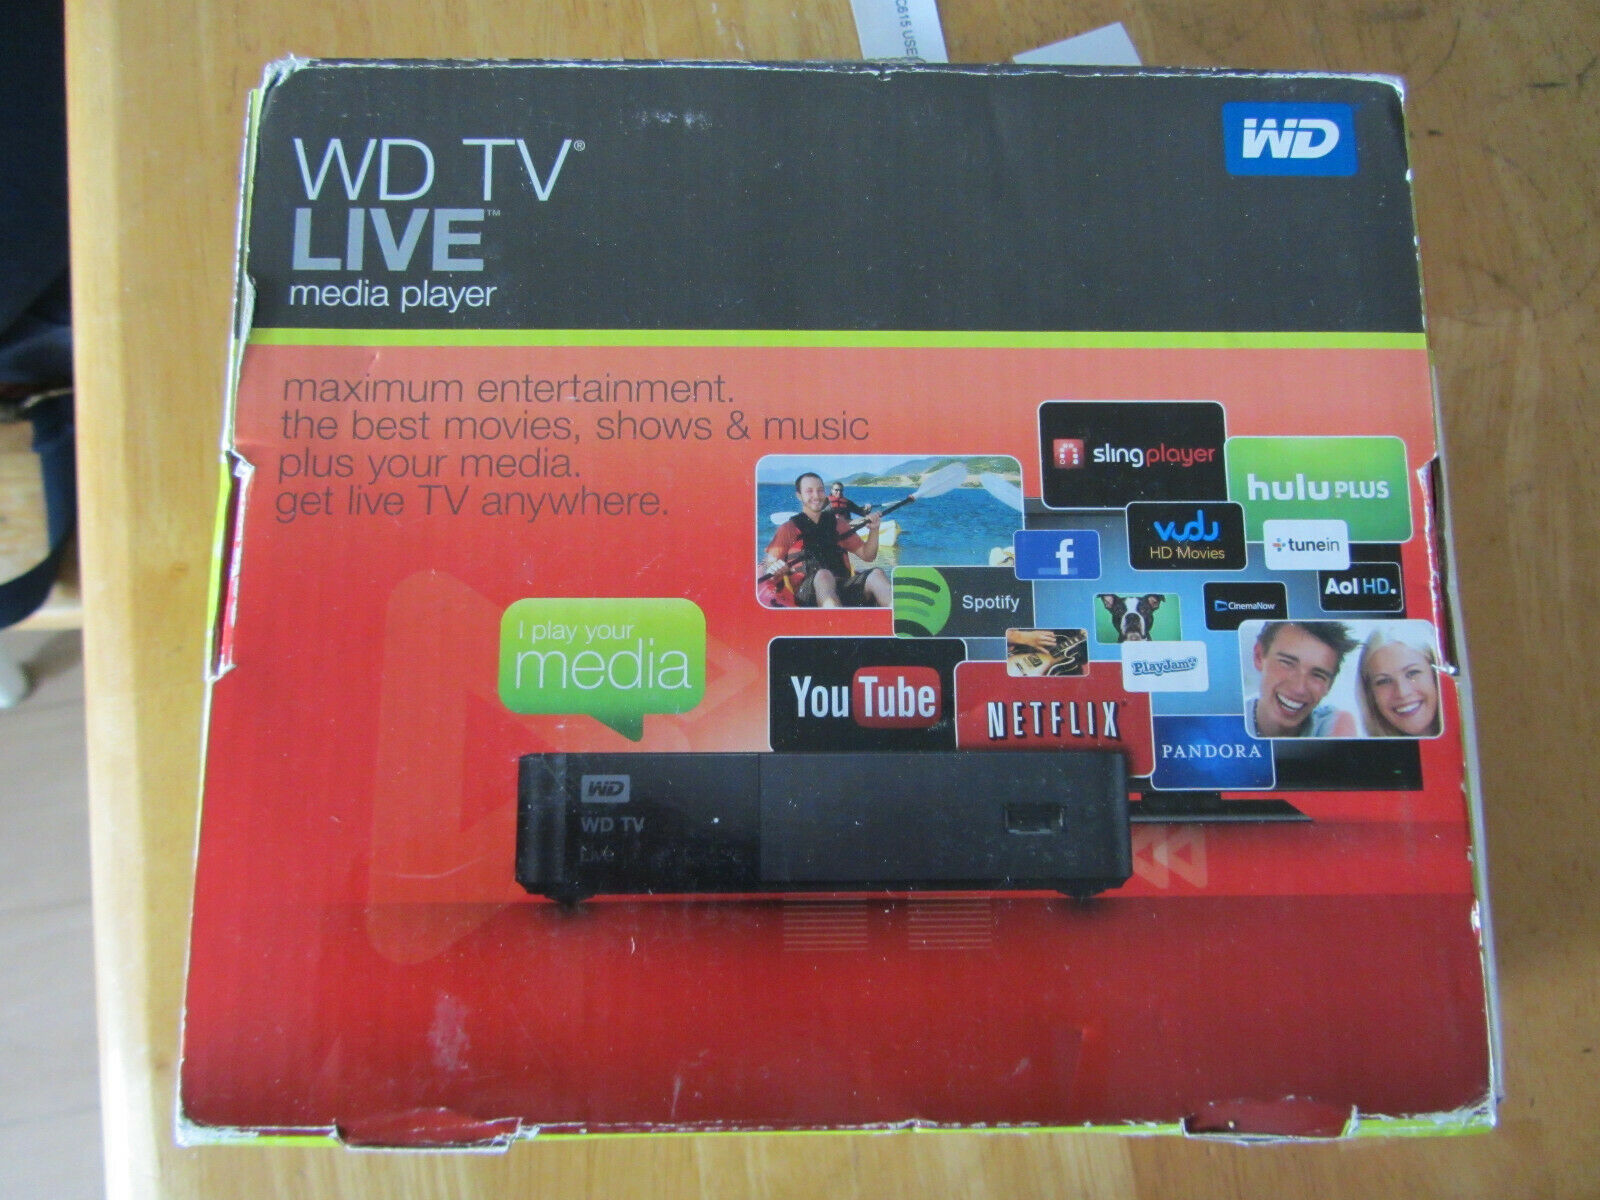 WD TV 1080p Live Streaming Media Player with Wi-Fi WDBHG70000NBK 1080p live media player streaming wdbhg70000nbk with